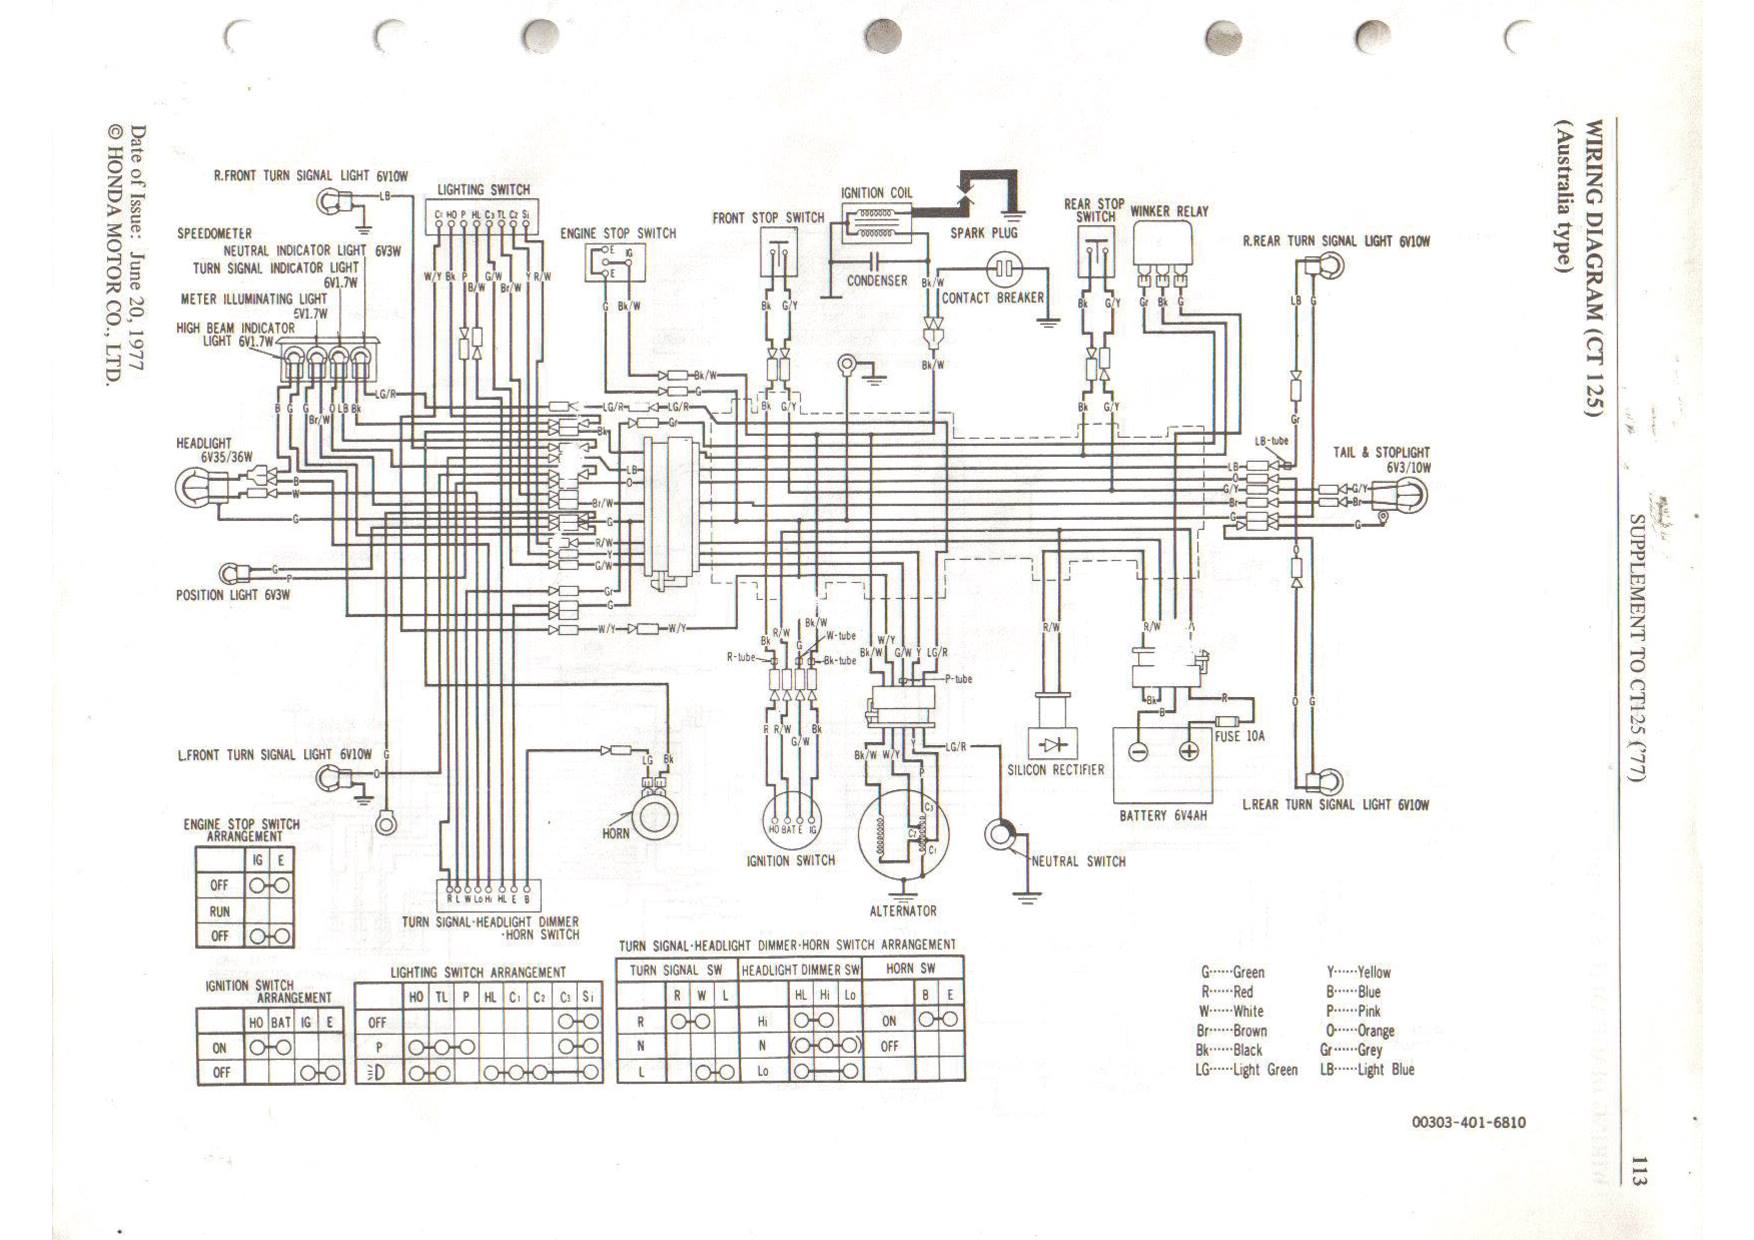 hight resolution of the 1977 honda ct125 wiring diagram simple as far as motorcycle wiring goes